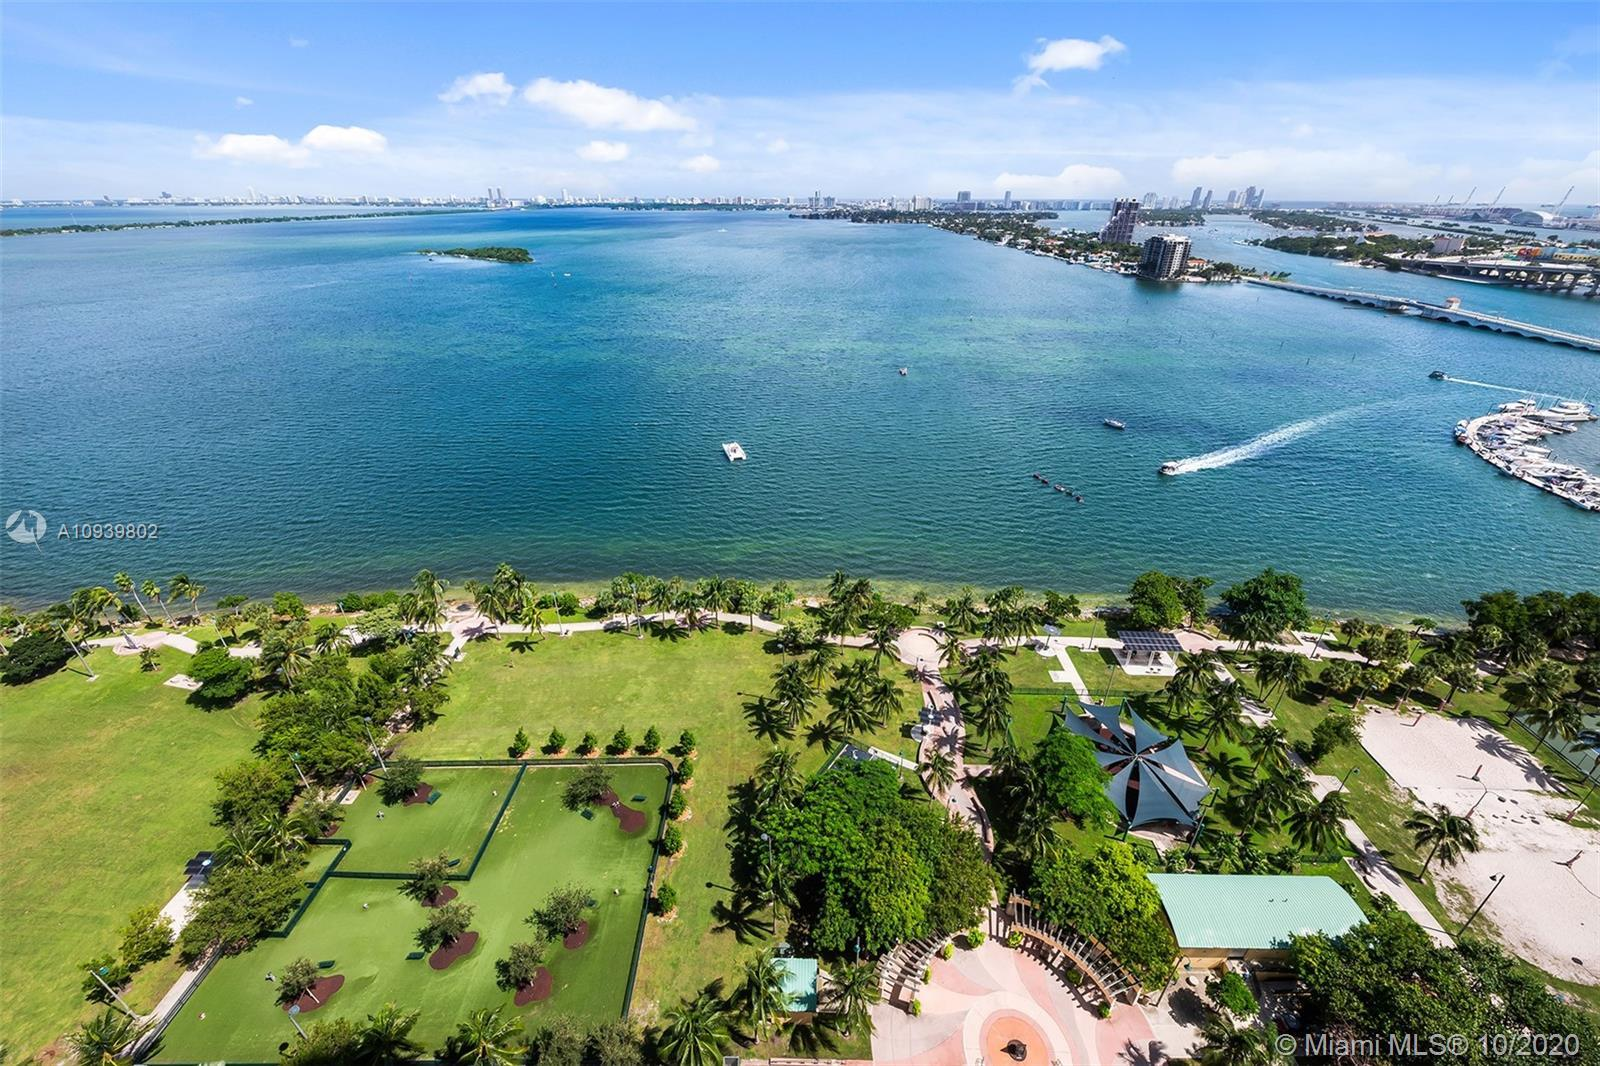 Spectacular water views from this beautiful 3-bedroom, 3-bathroom unit at 1800 Club. This house in t